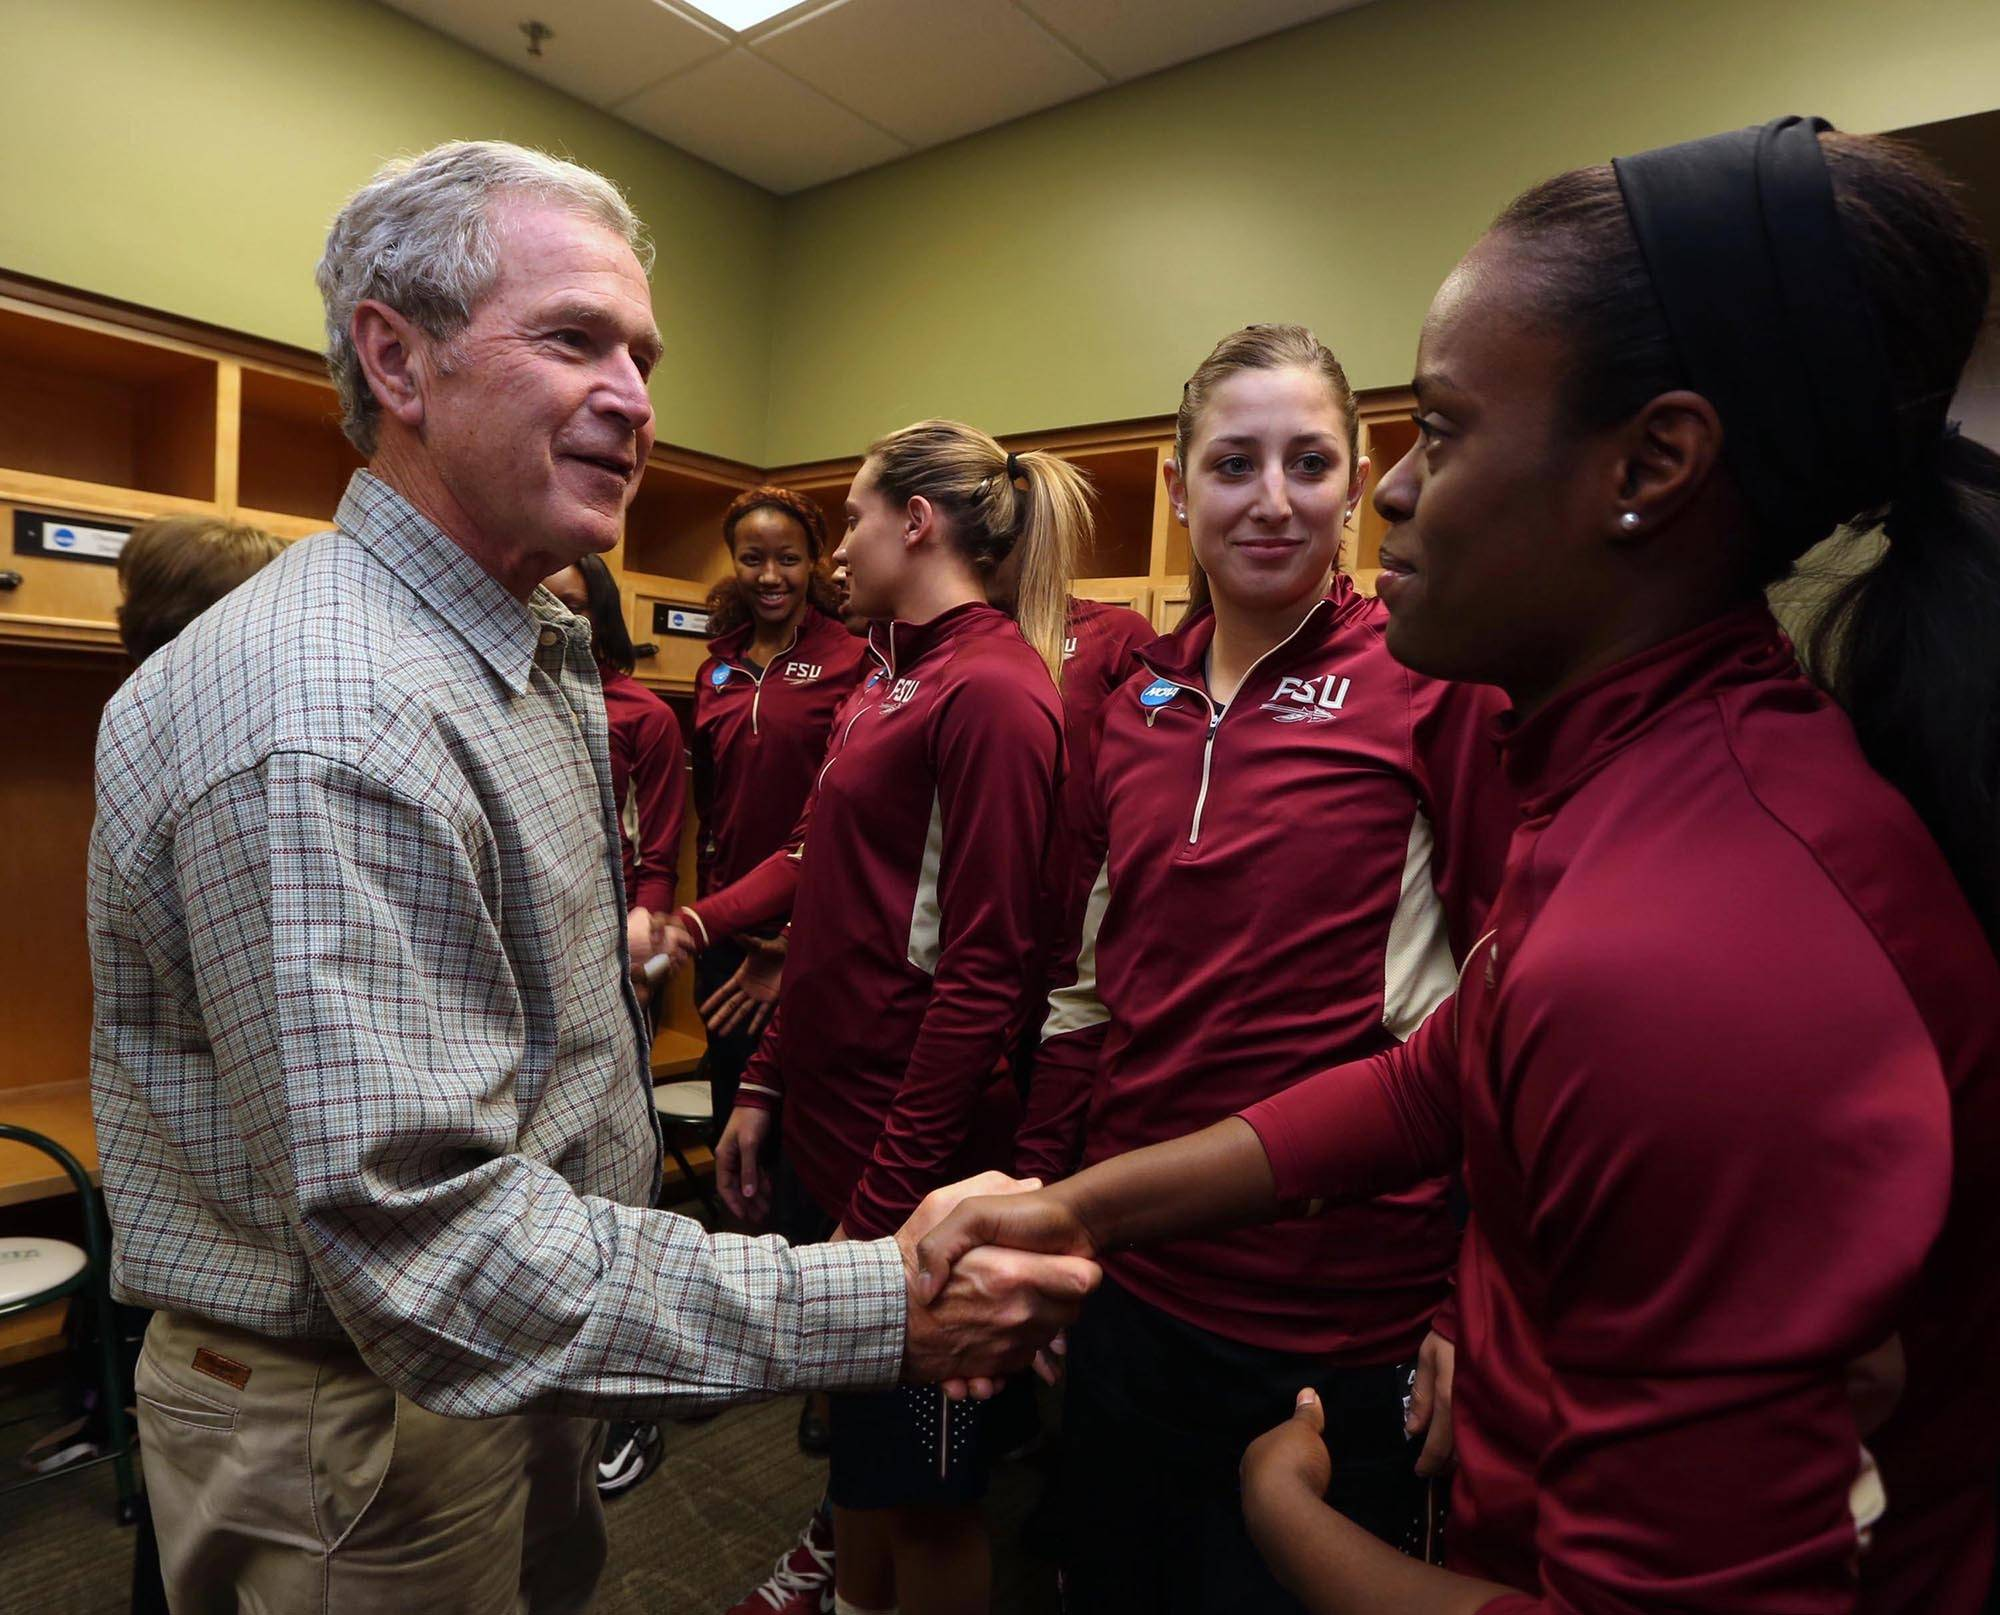 Former President George W. Bush shakes hands with Florida State Morgan Tolels, right, and Leonor Rodriquez, center, before their second-round NCAA college women's basketball game against Baylor, Tuesday, March,  26, 2013, in Waco, Texas. (AP Photo/Florida State University, Rod Aydelotte, Pool)